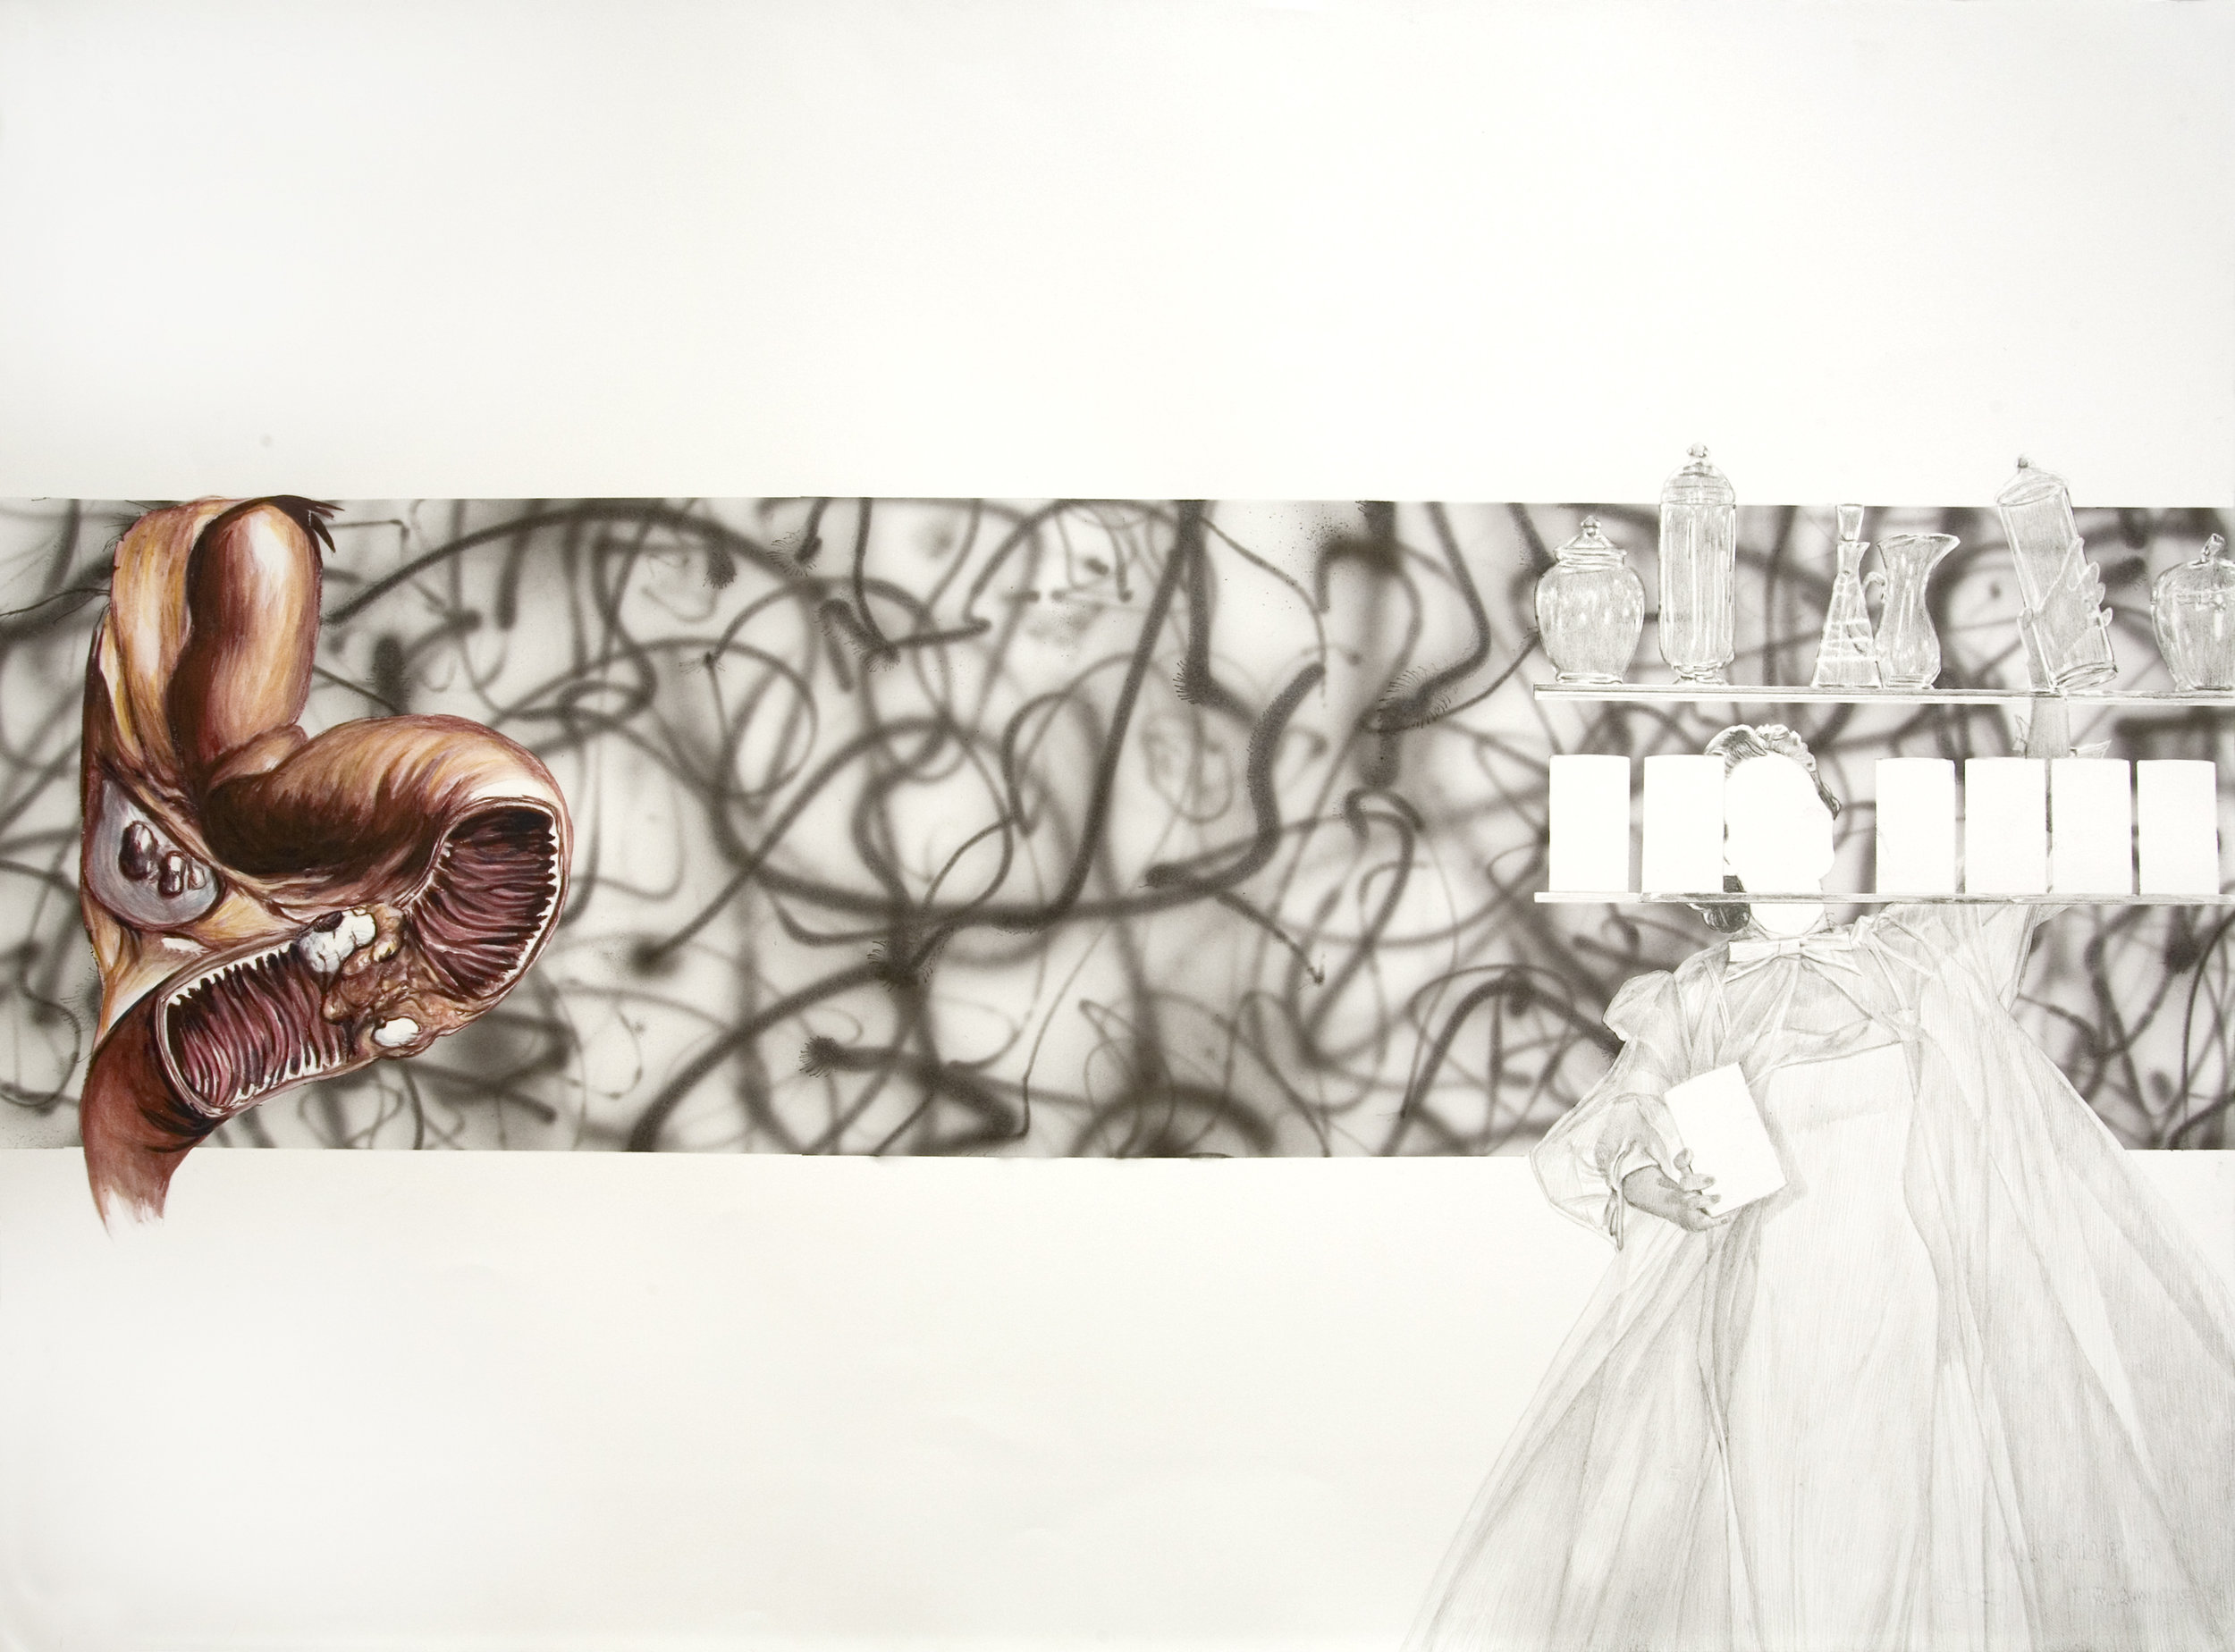 Anatomy Weird-ohs (Intestine; Glasswoman & Airbrushing), 2011 gouache, pencil and watercolor on paper 57,2 x 76,8 cm - 22 1/2 x 30 1/4 inches